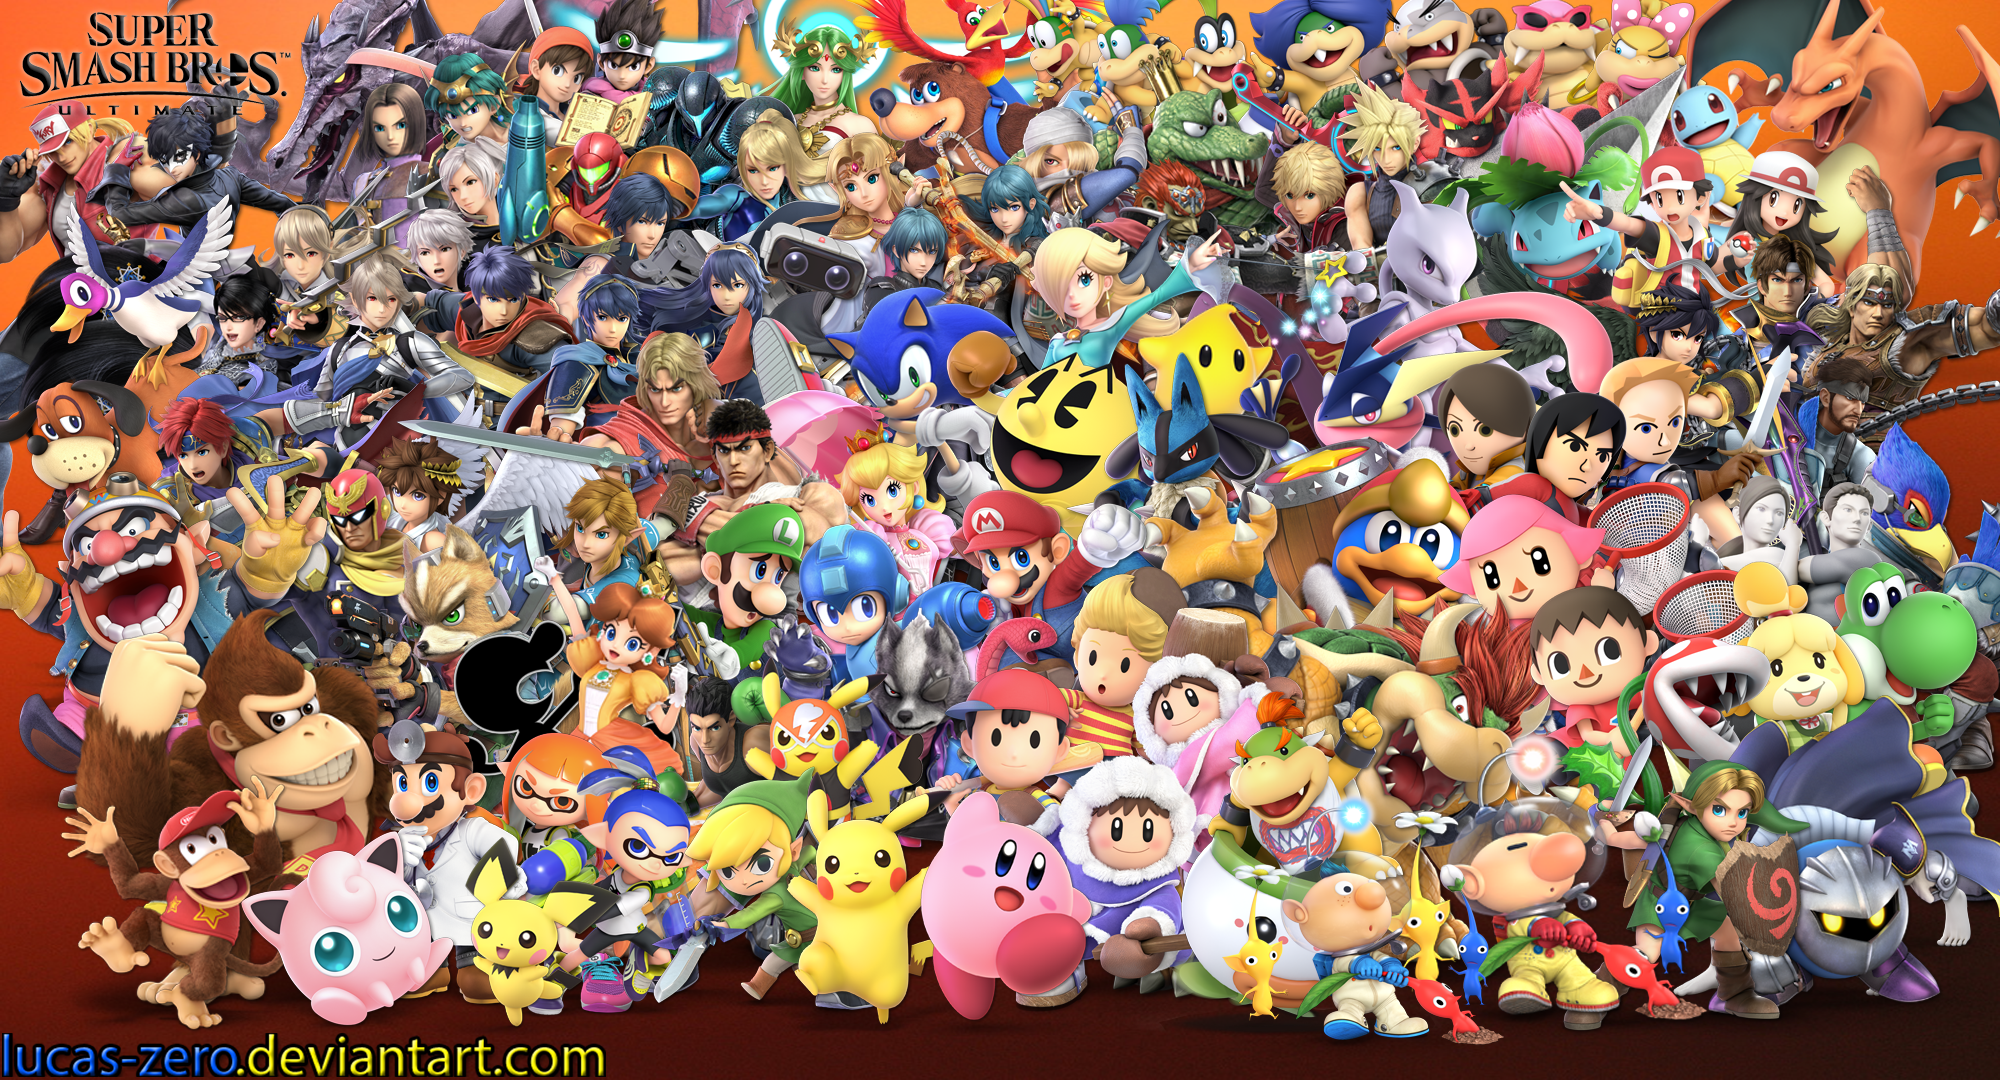 Super Smash Bros Ultimate Wallpaper By Lucas Zero On Deviantart